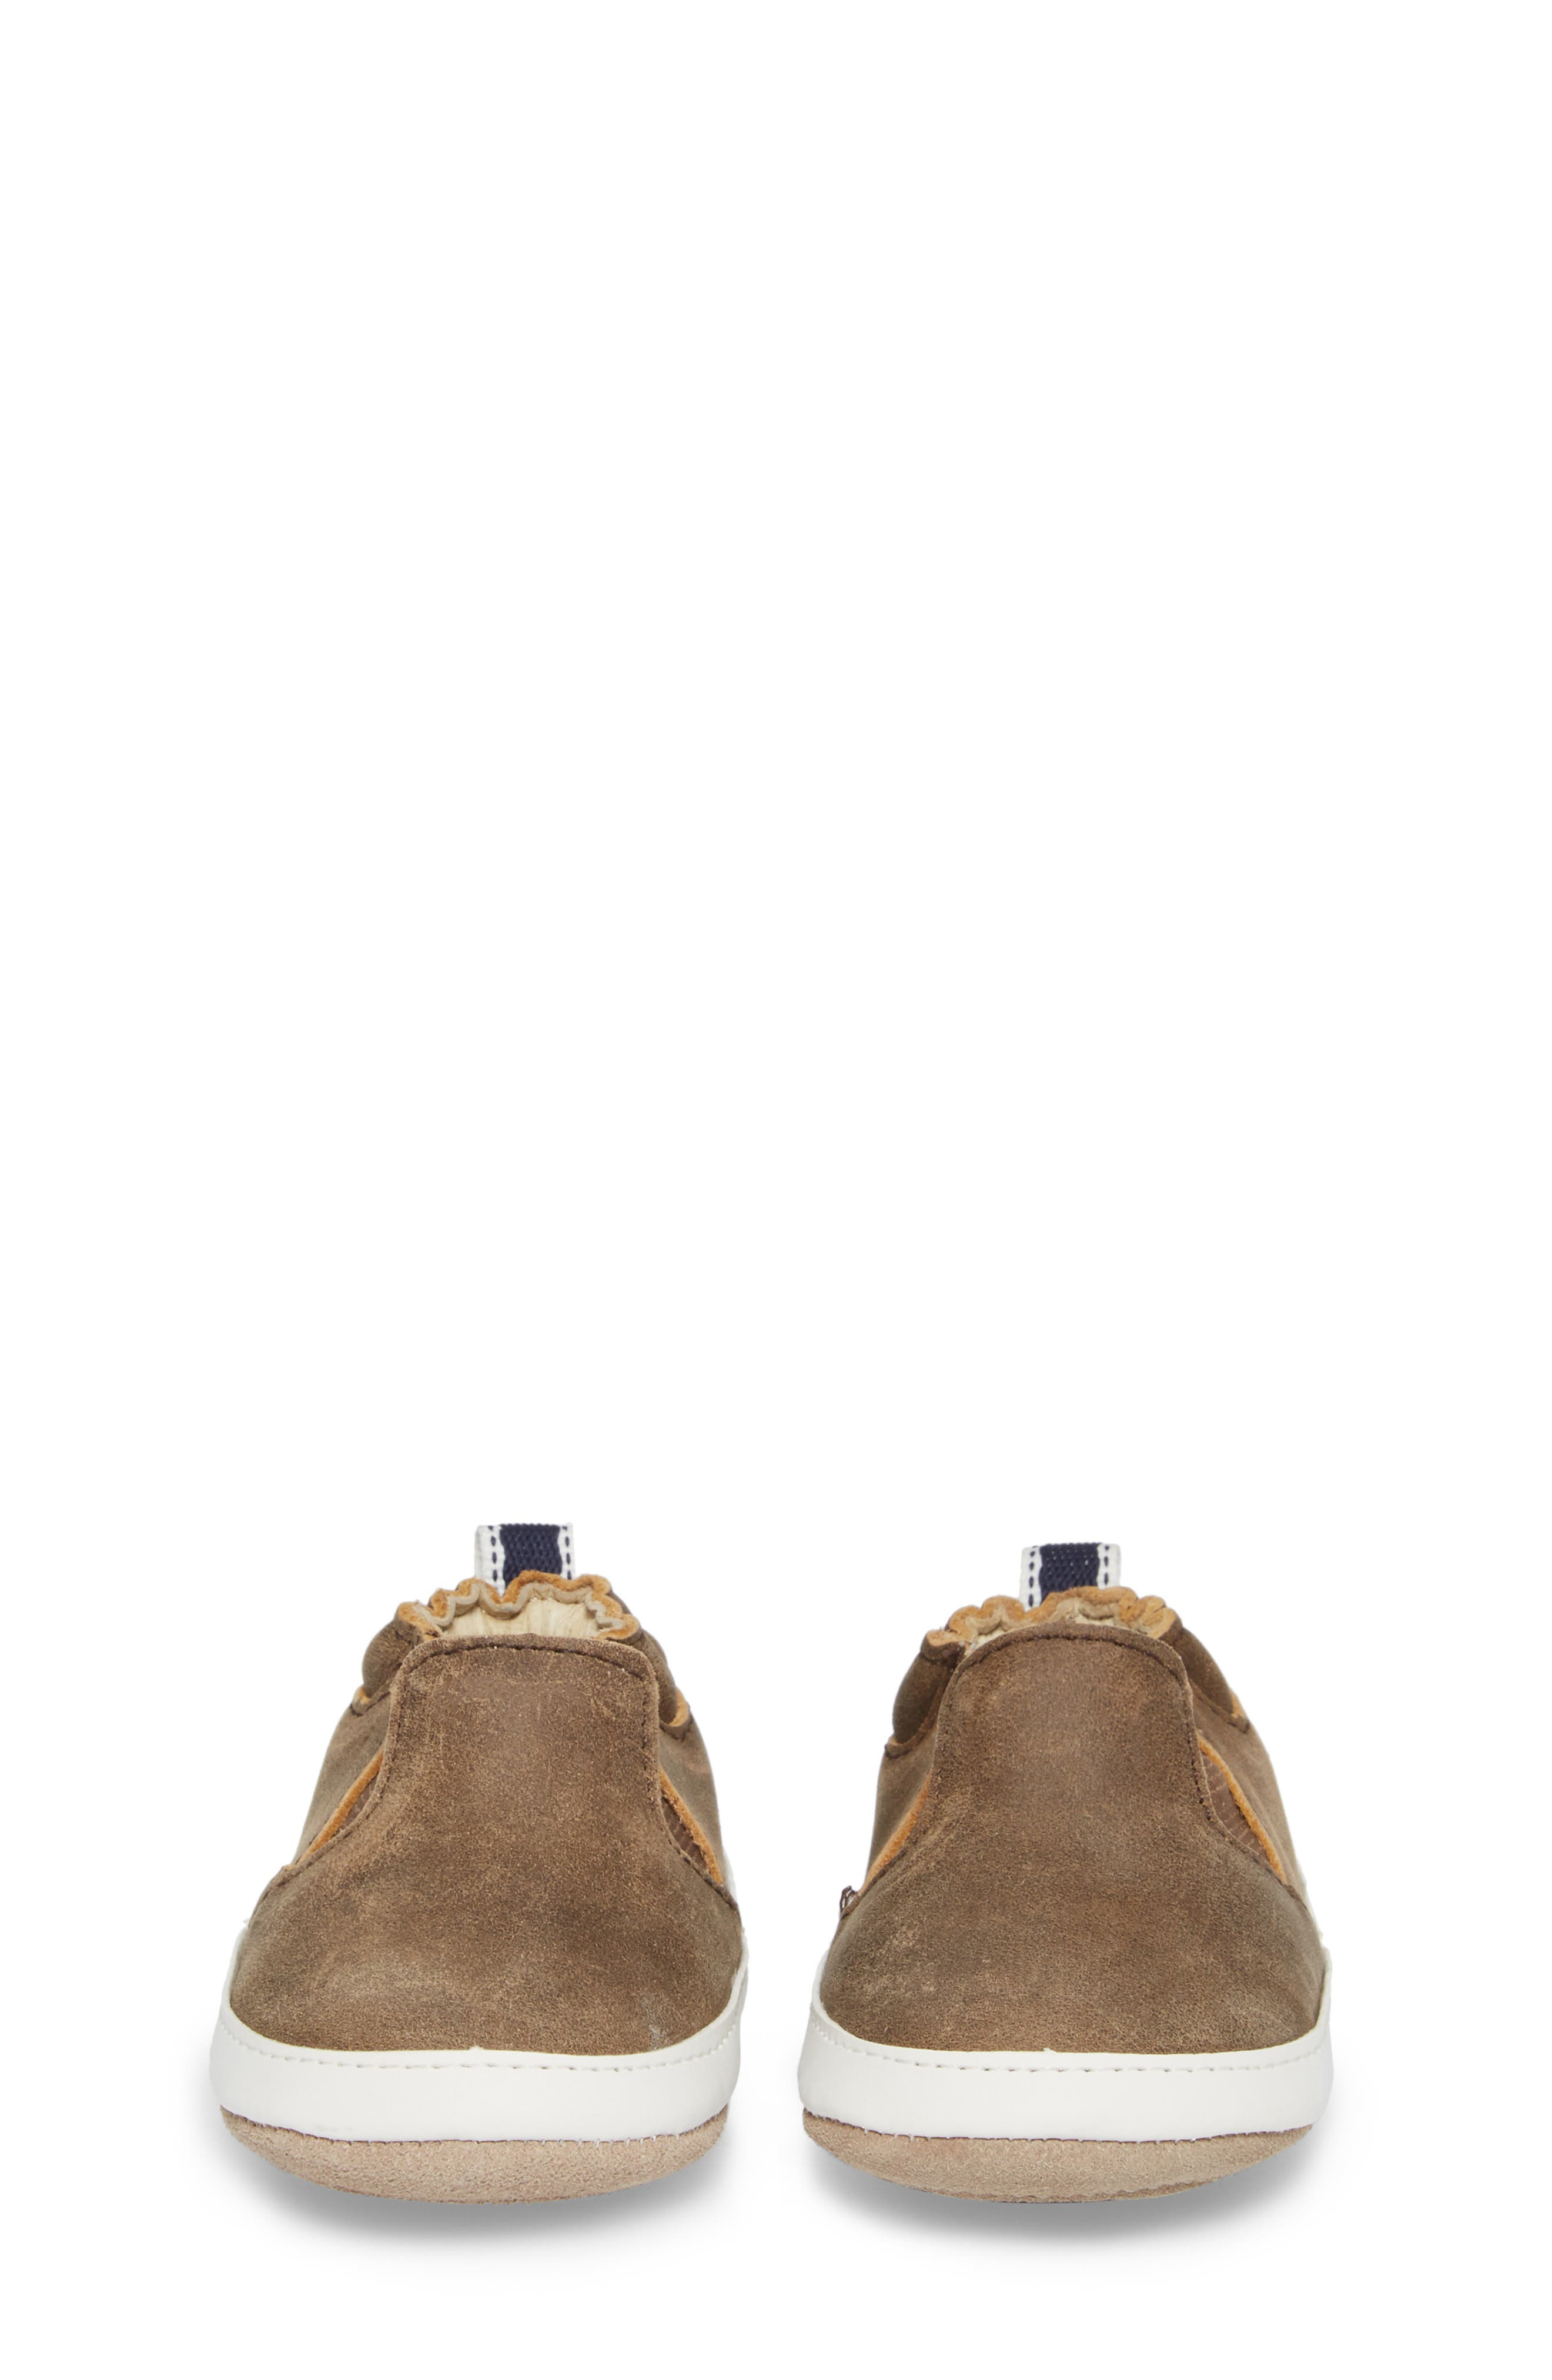 Lenny Loafer,                             Alternate thumbnail 4, color,                             Brown